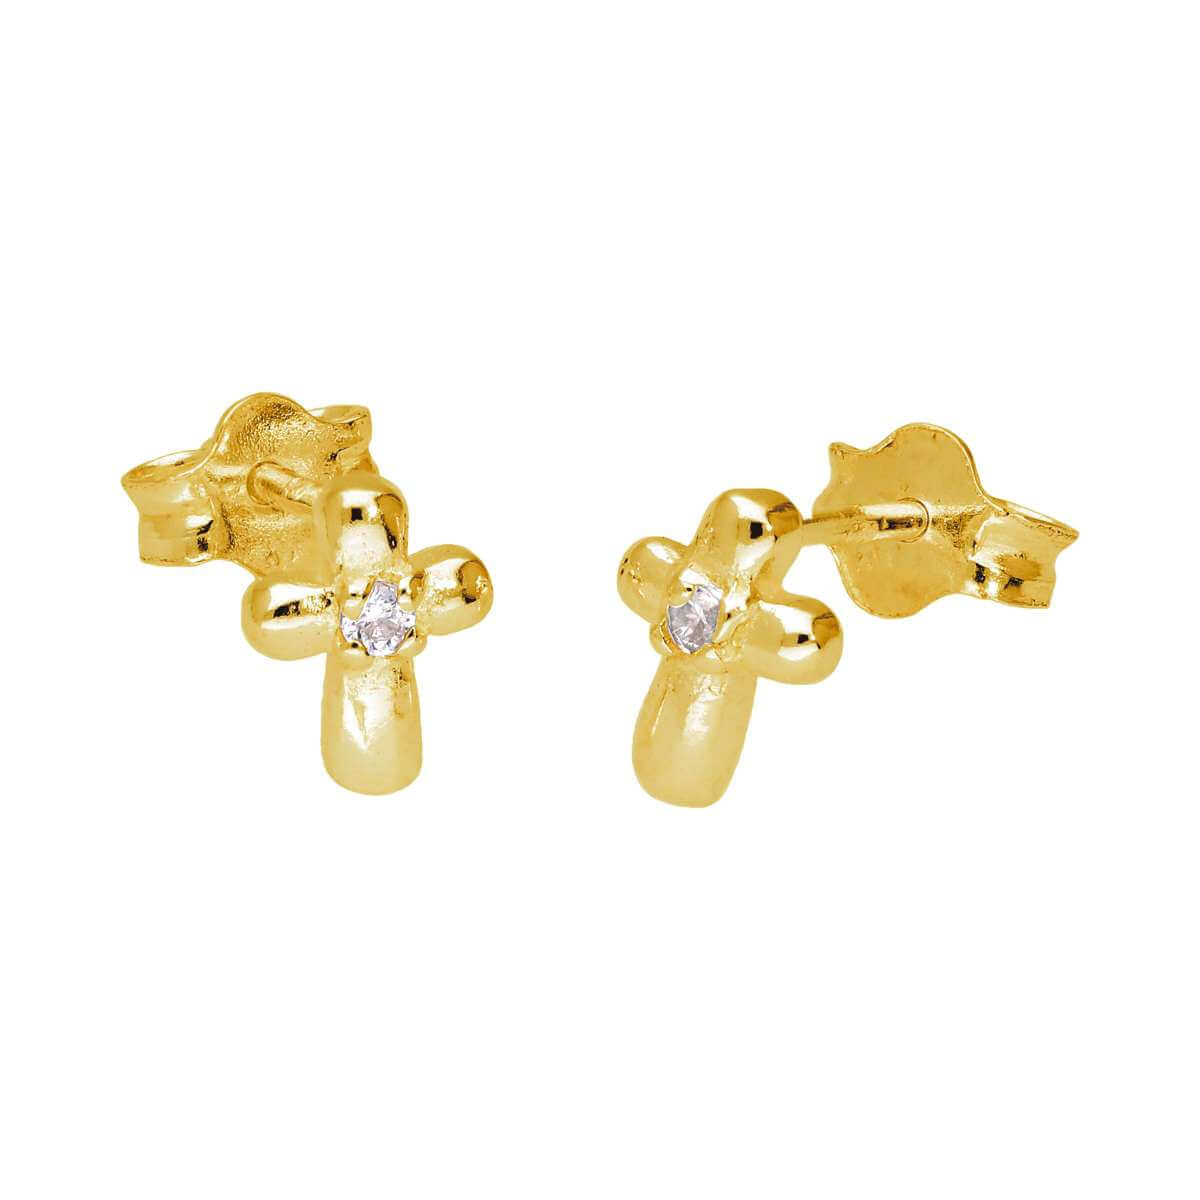 Gold Plated Sterling Silver Tiny Cross CZ Stud Earrings